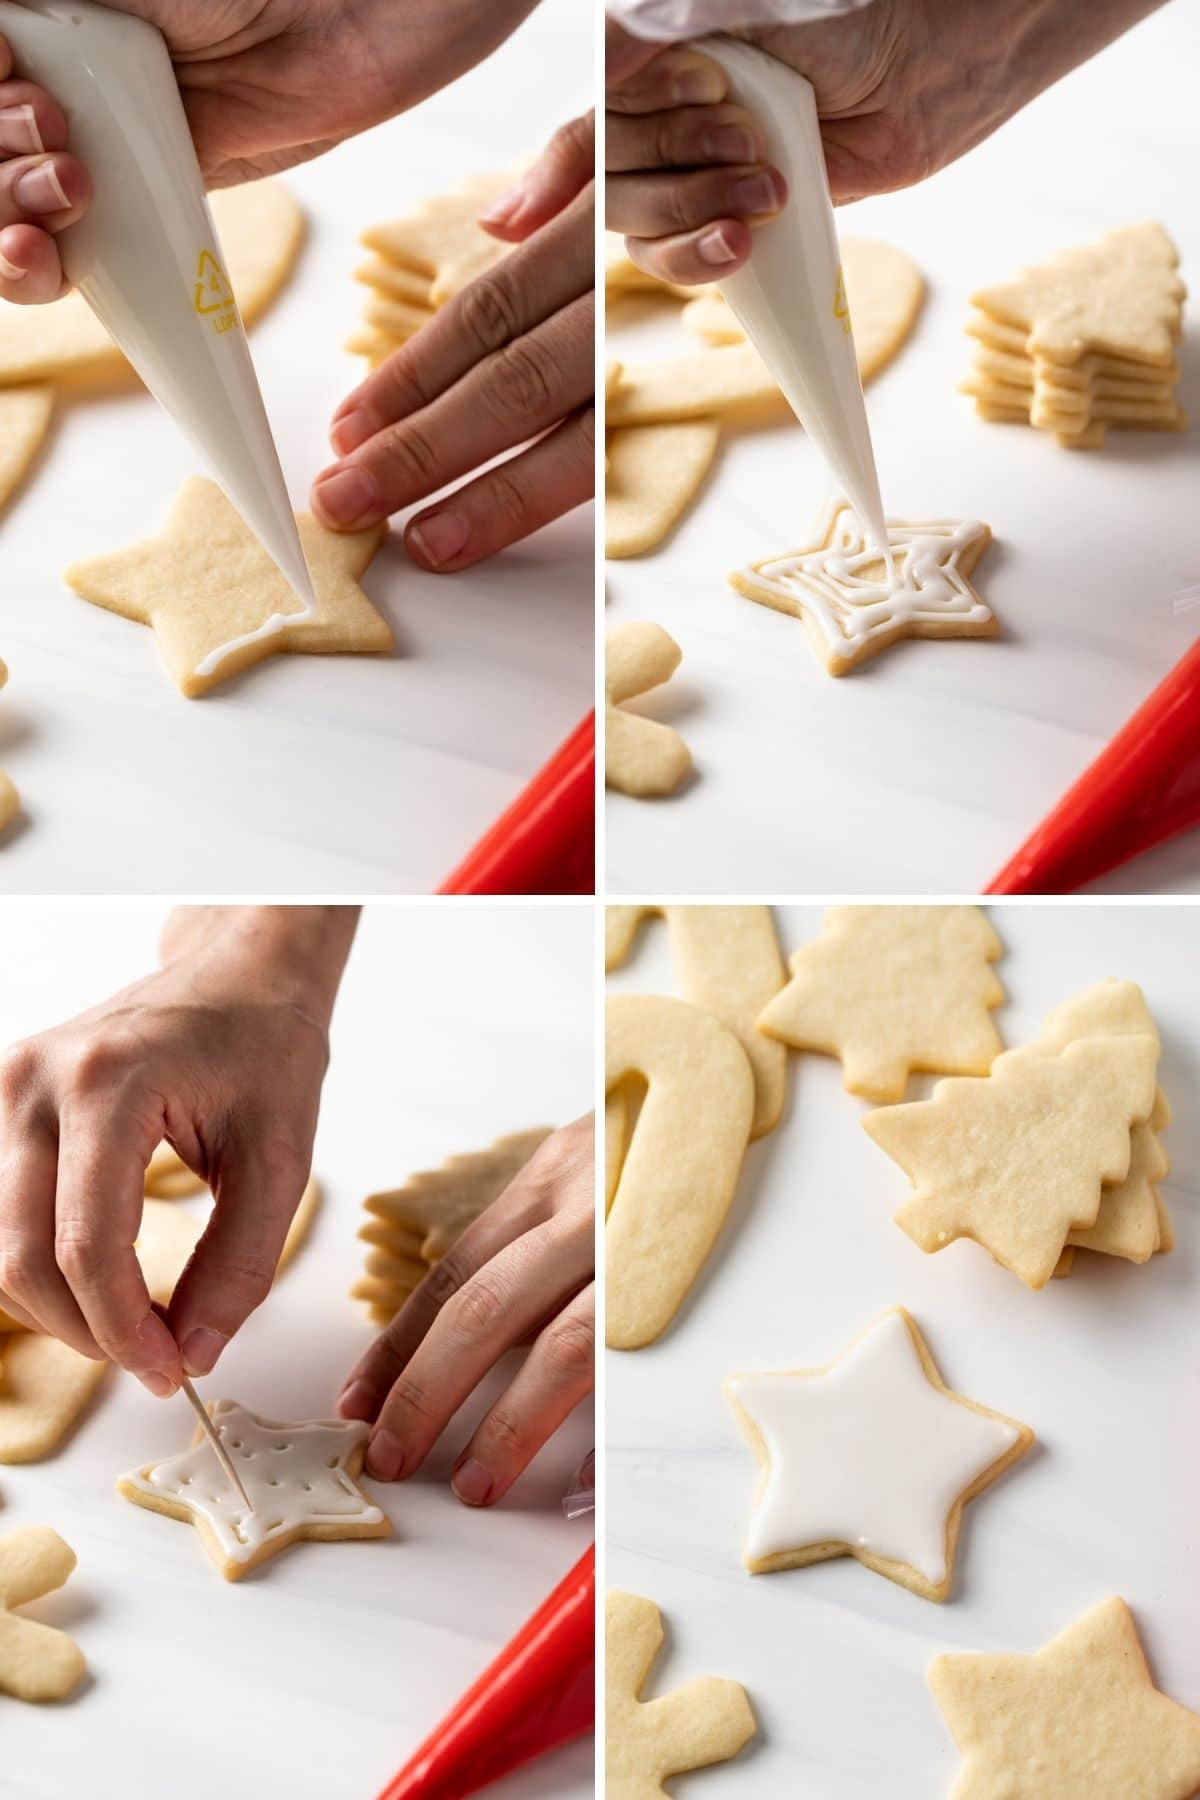 piping white icing on star shaped cookies